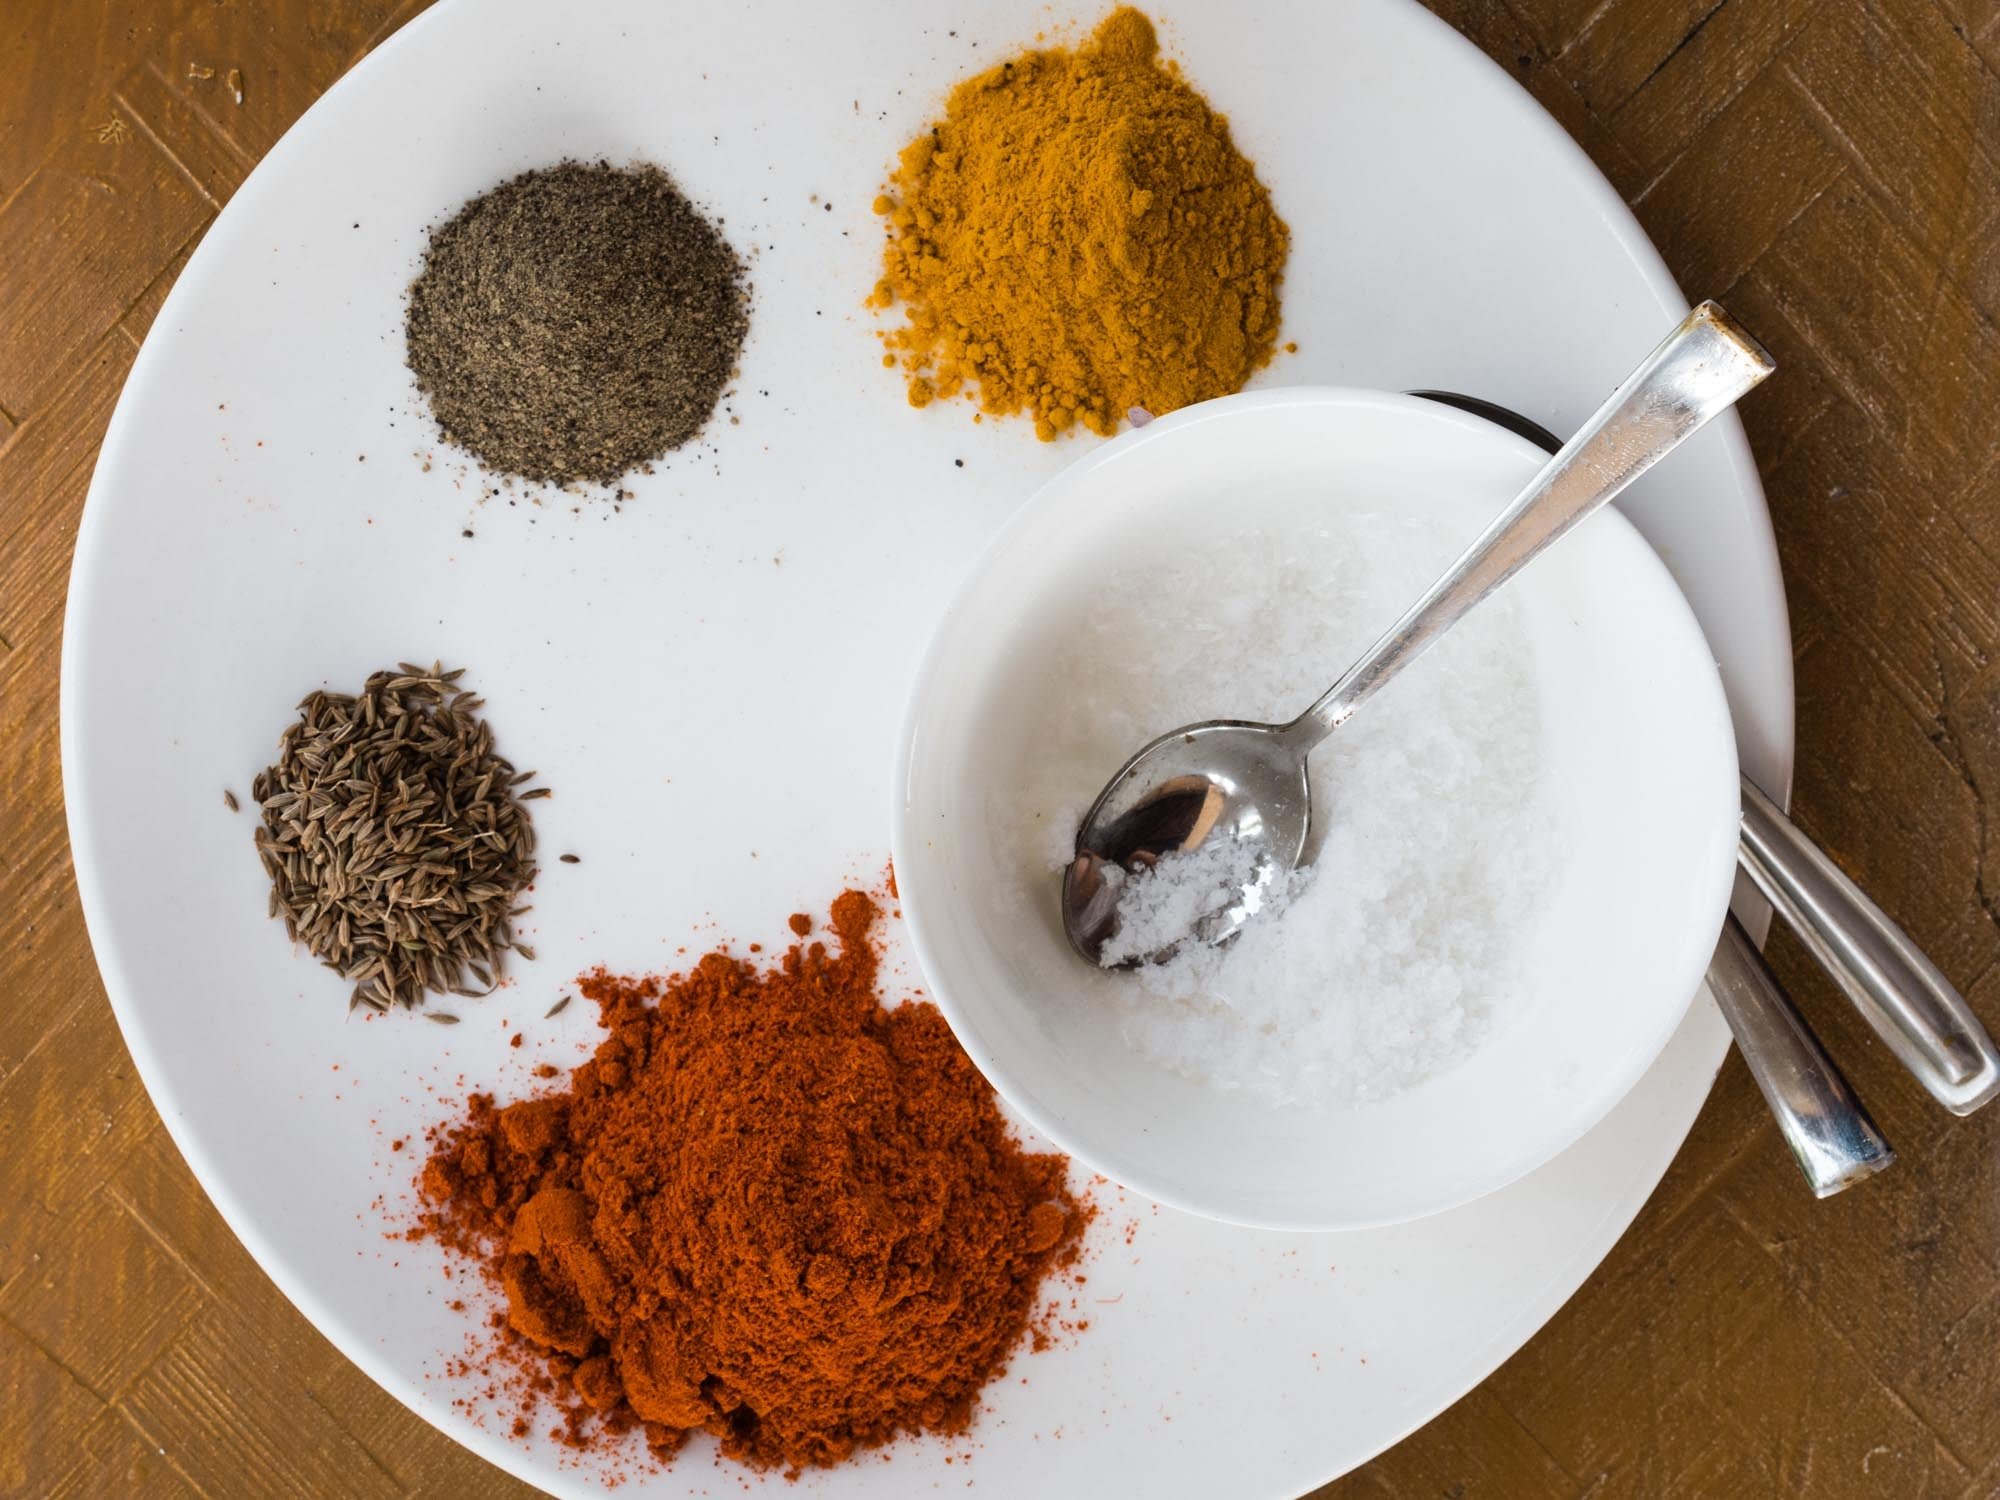 A Wisconsin Spice Company Proves Getting Political Can Be Good for Business